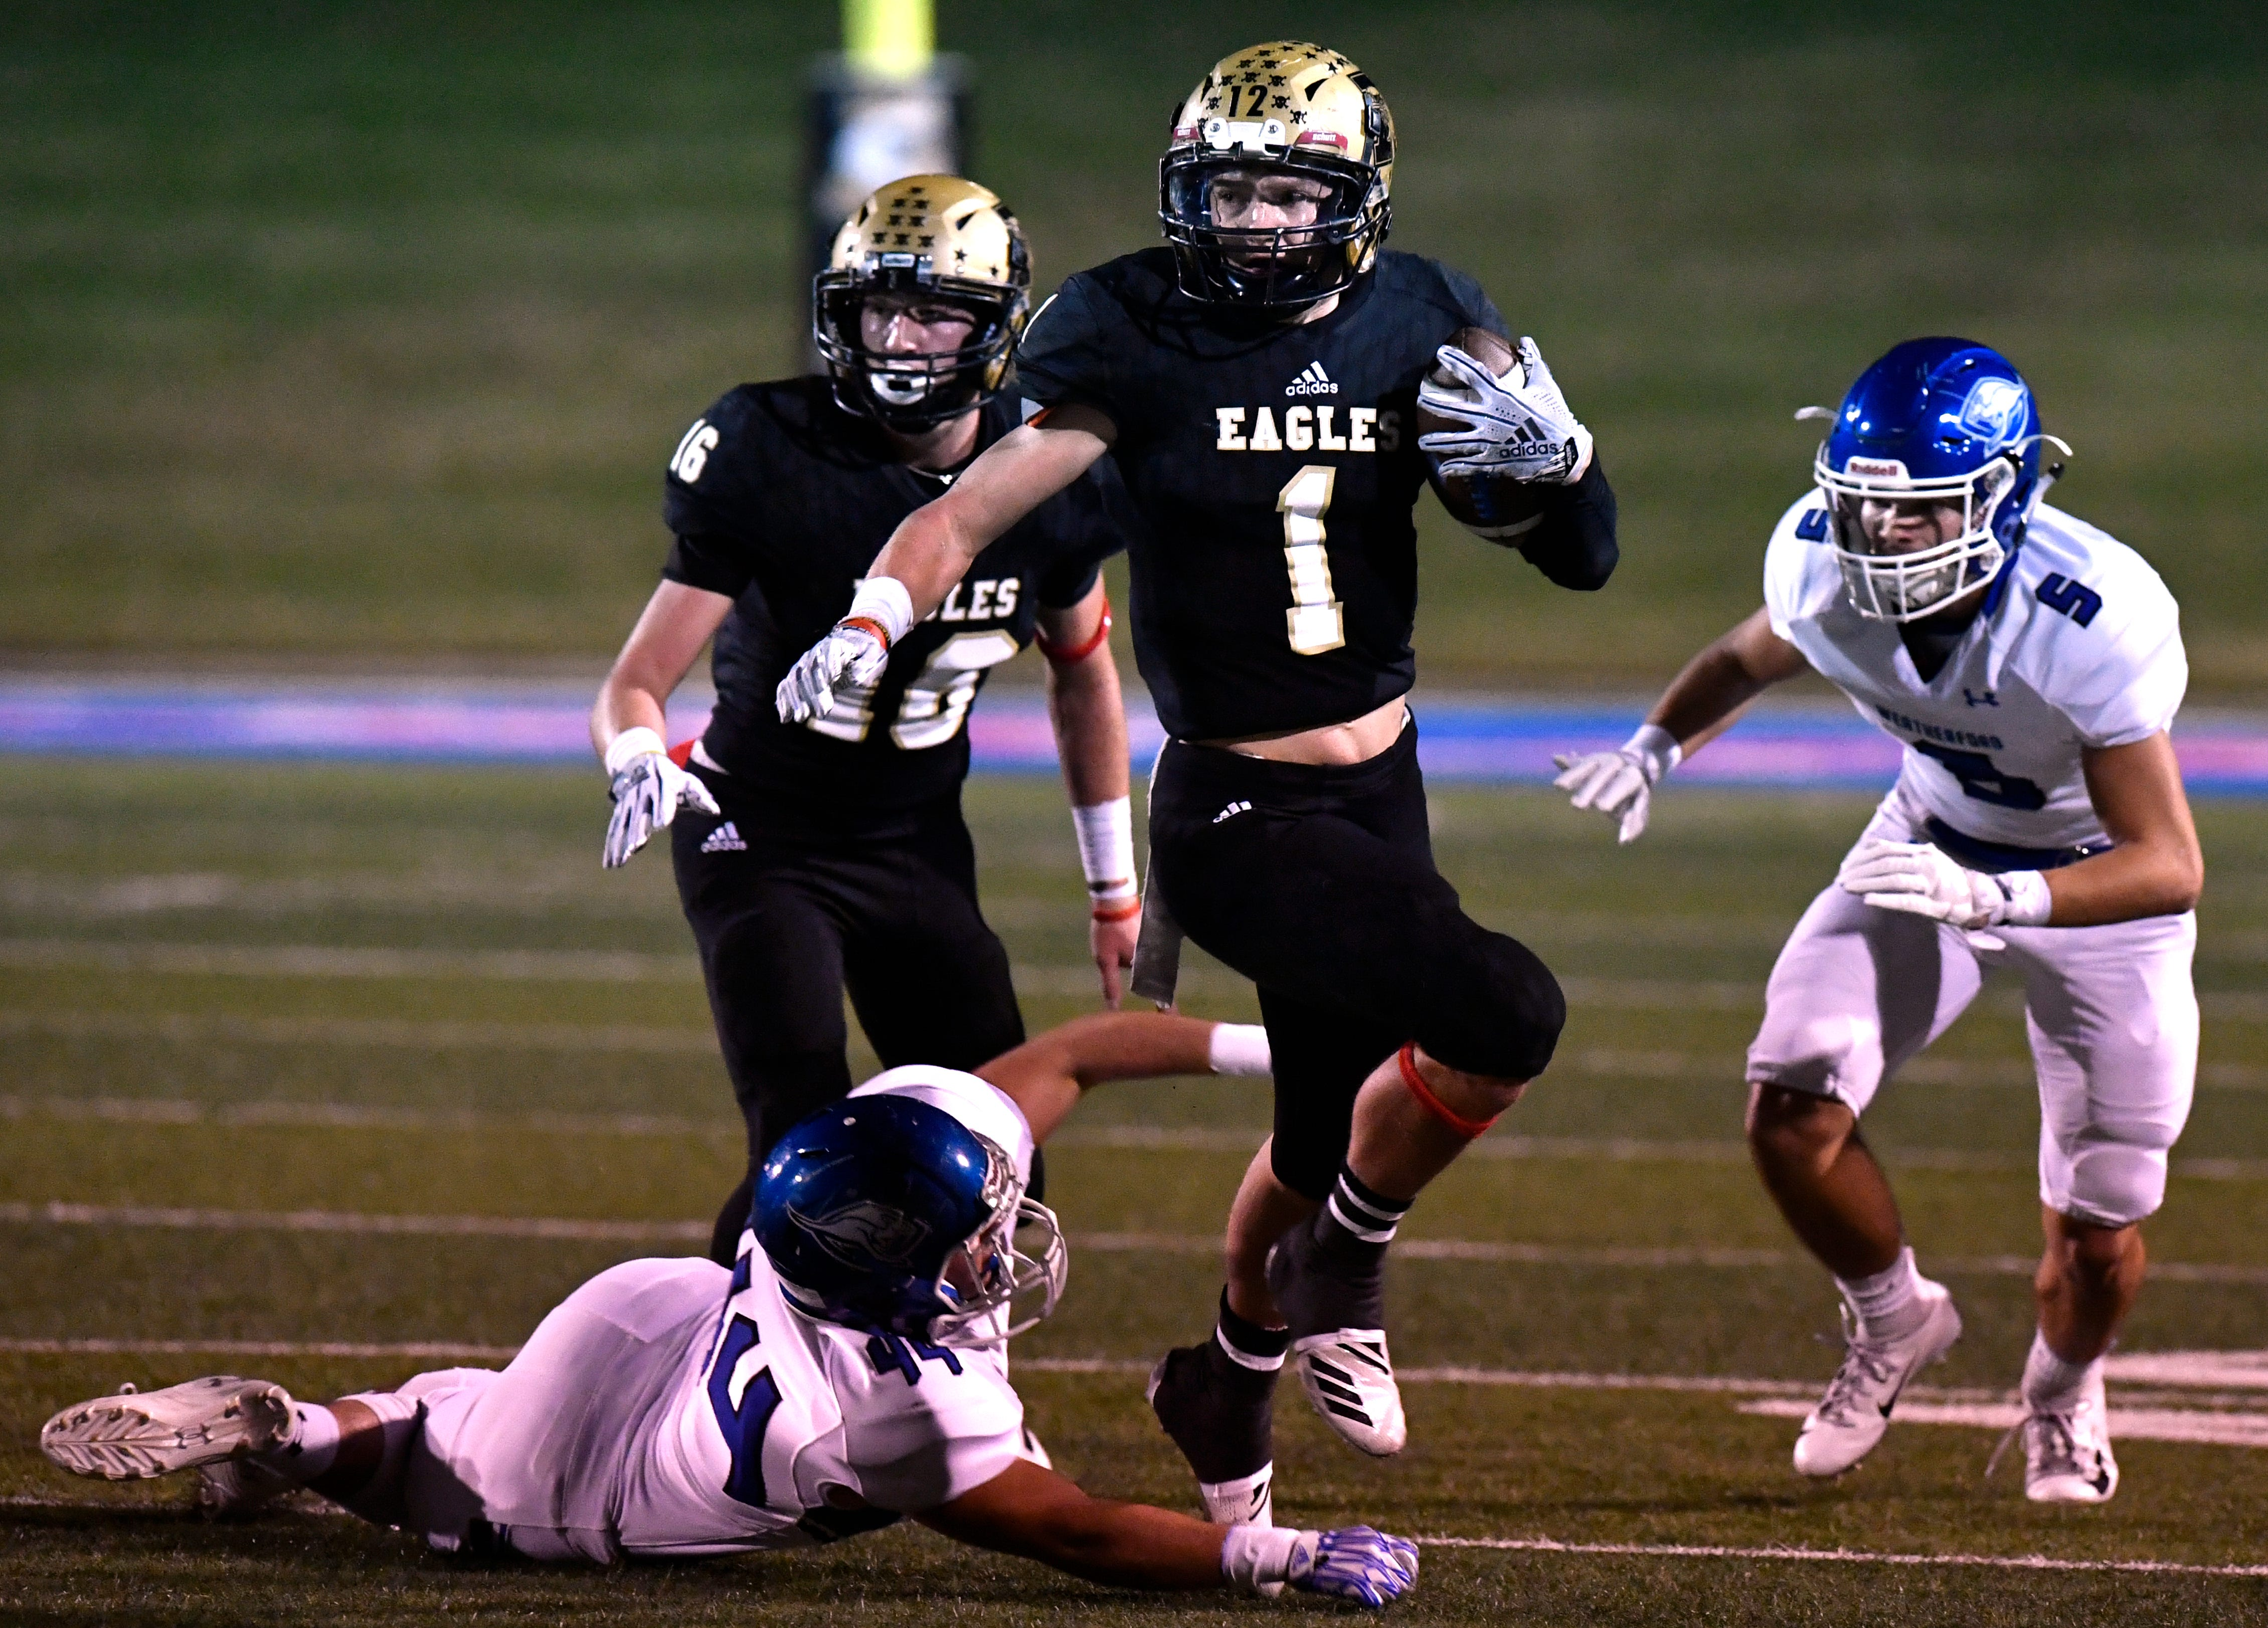 Abilene High's Colton Wilson slips past the Weatherford defense during Friday's game Oct. 26, 2018. Wilson is tied for fourth on the Eagles with 47 tackles.